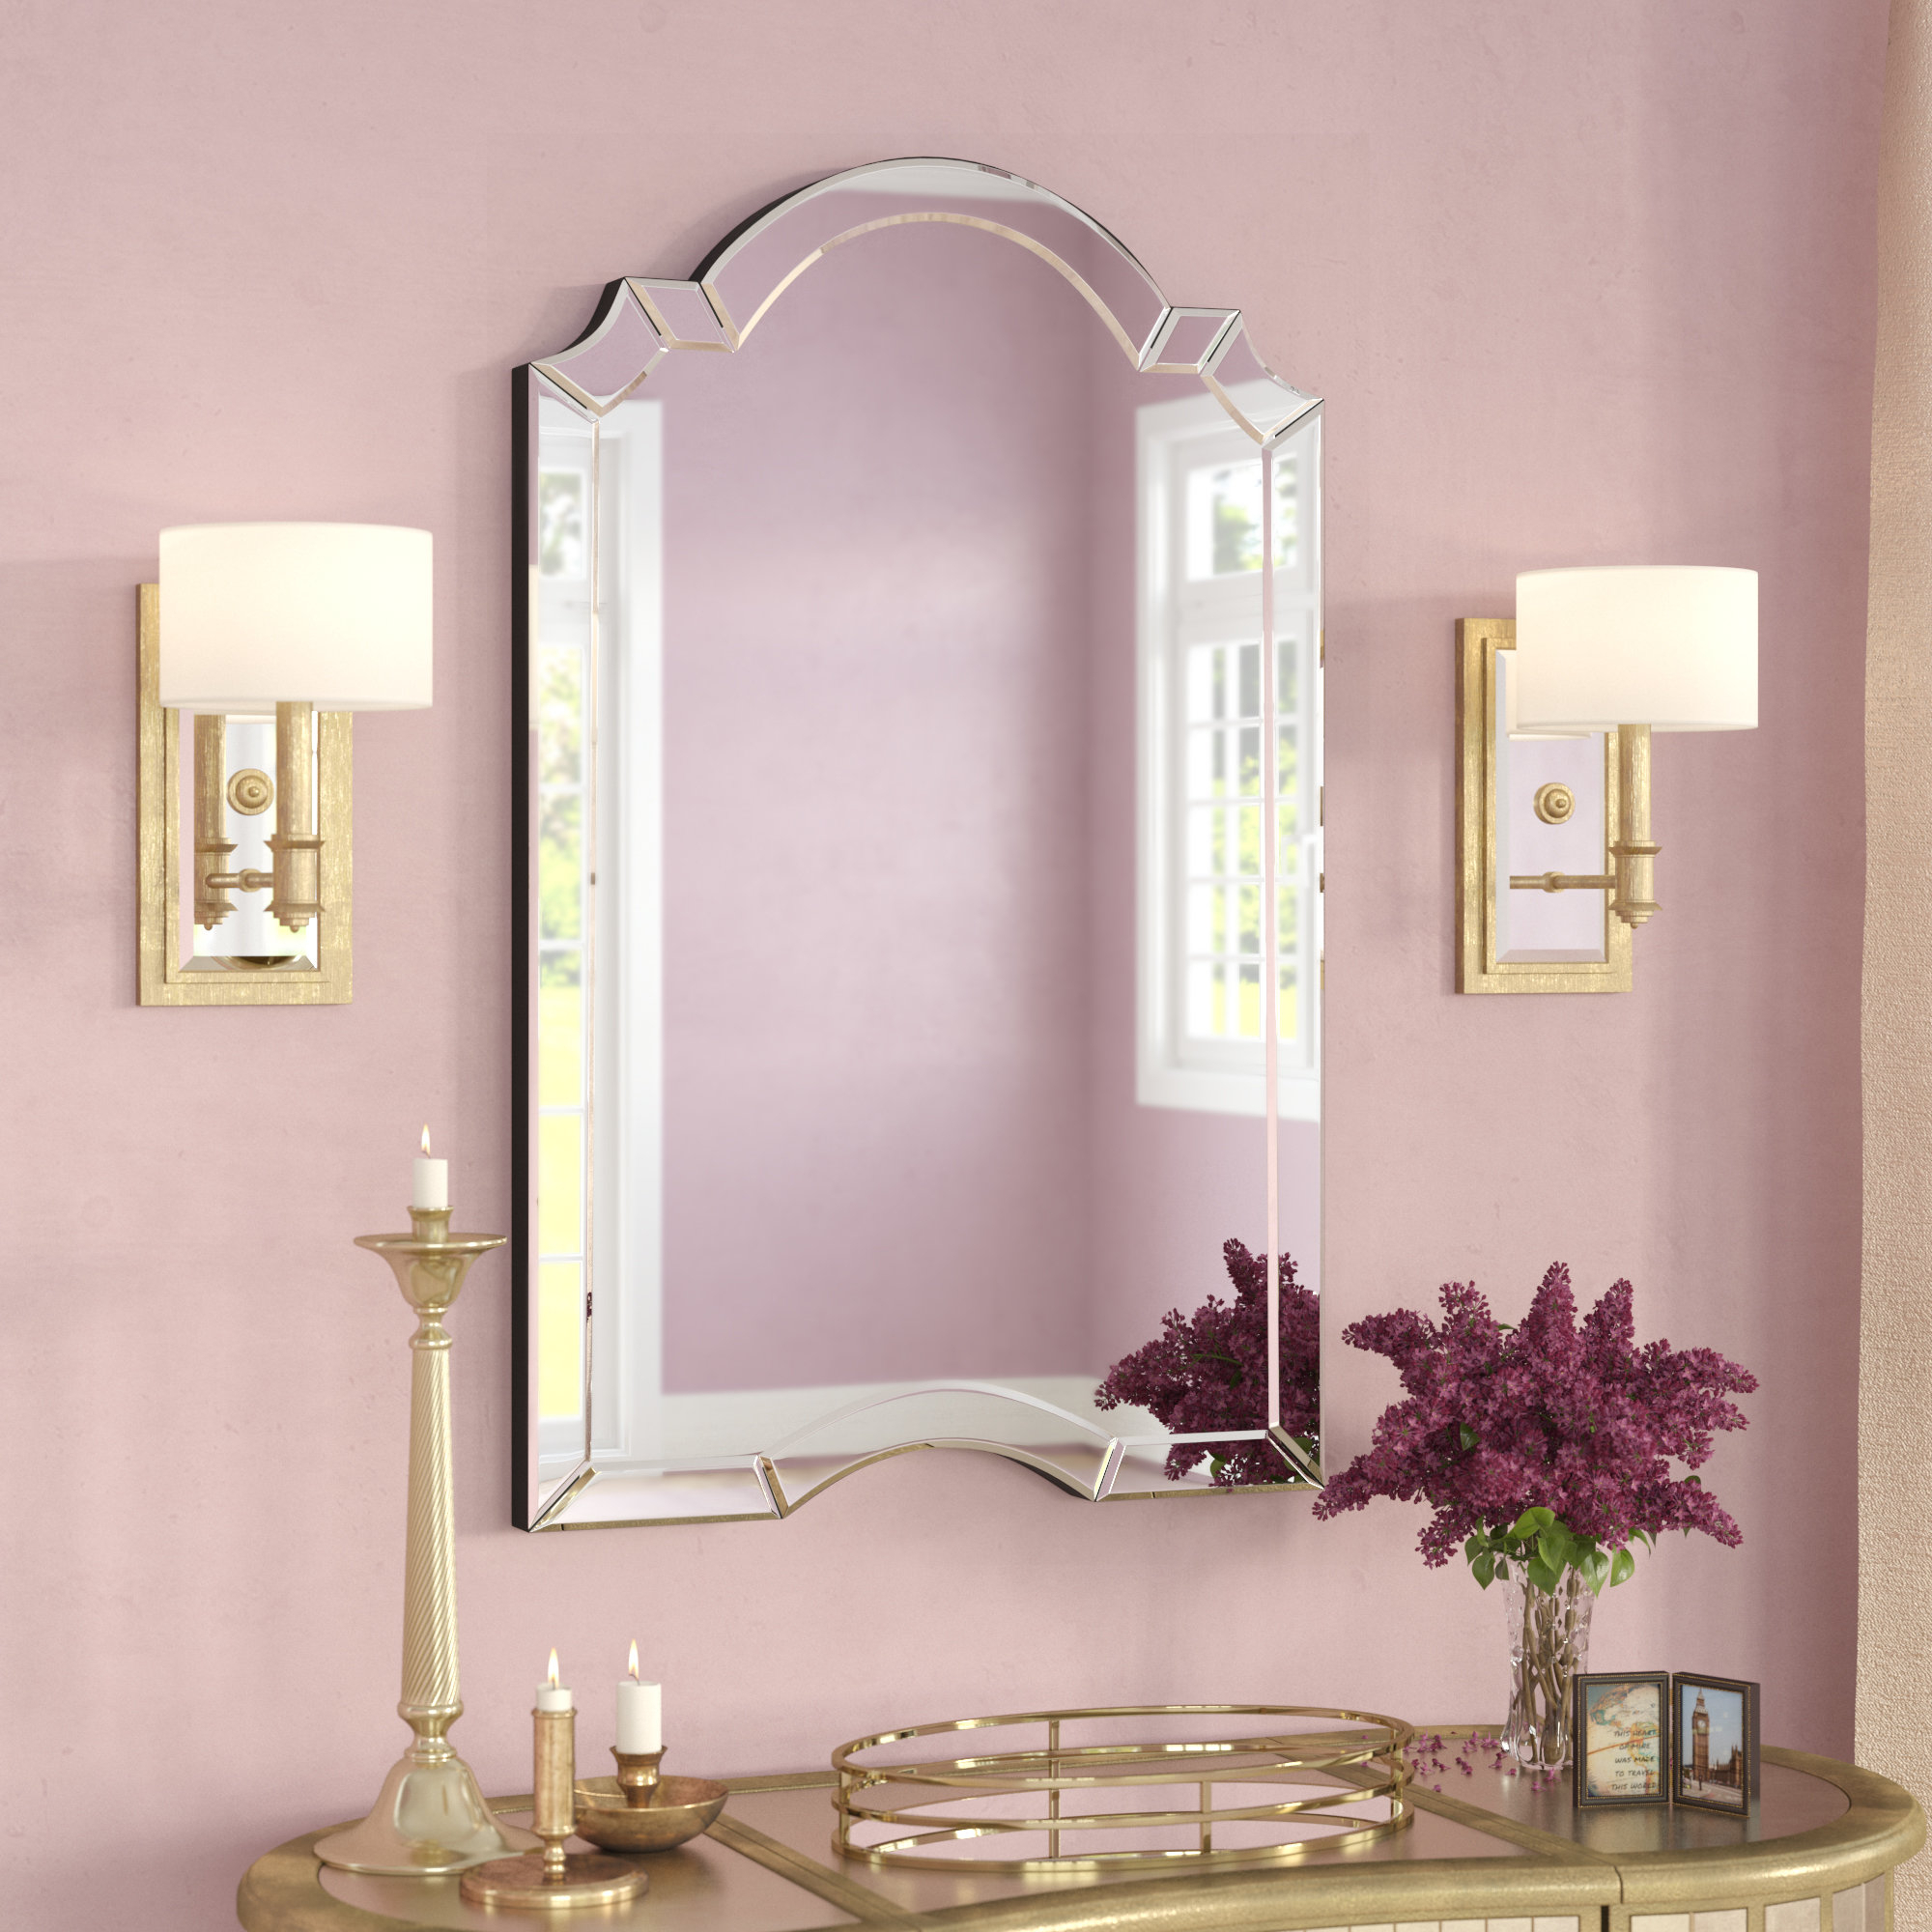 Featured Image of Ekaterina Arch/crowned Top Wall Mirrors